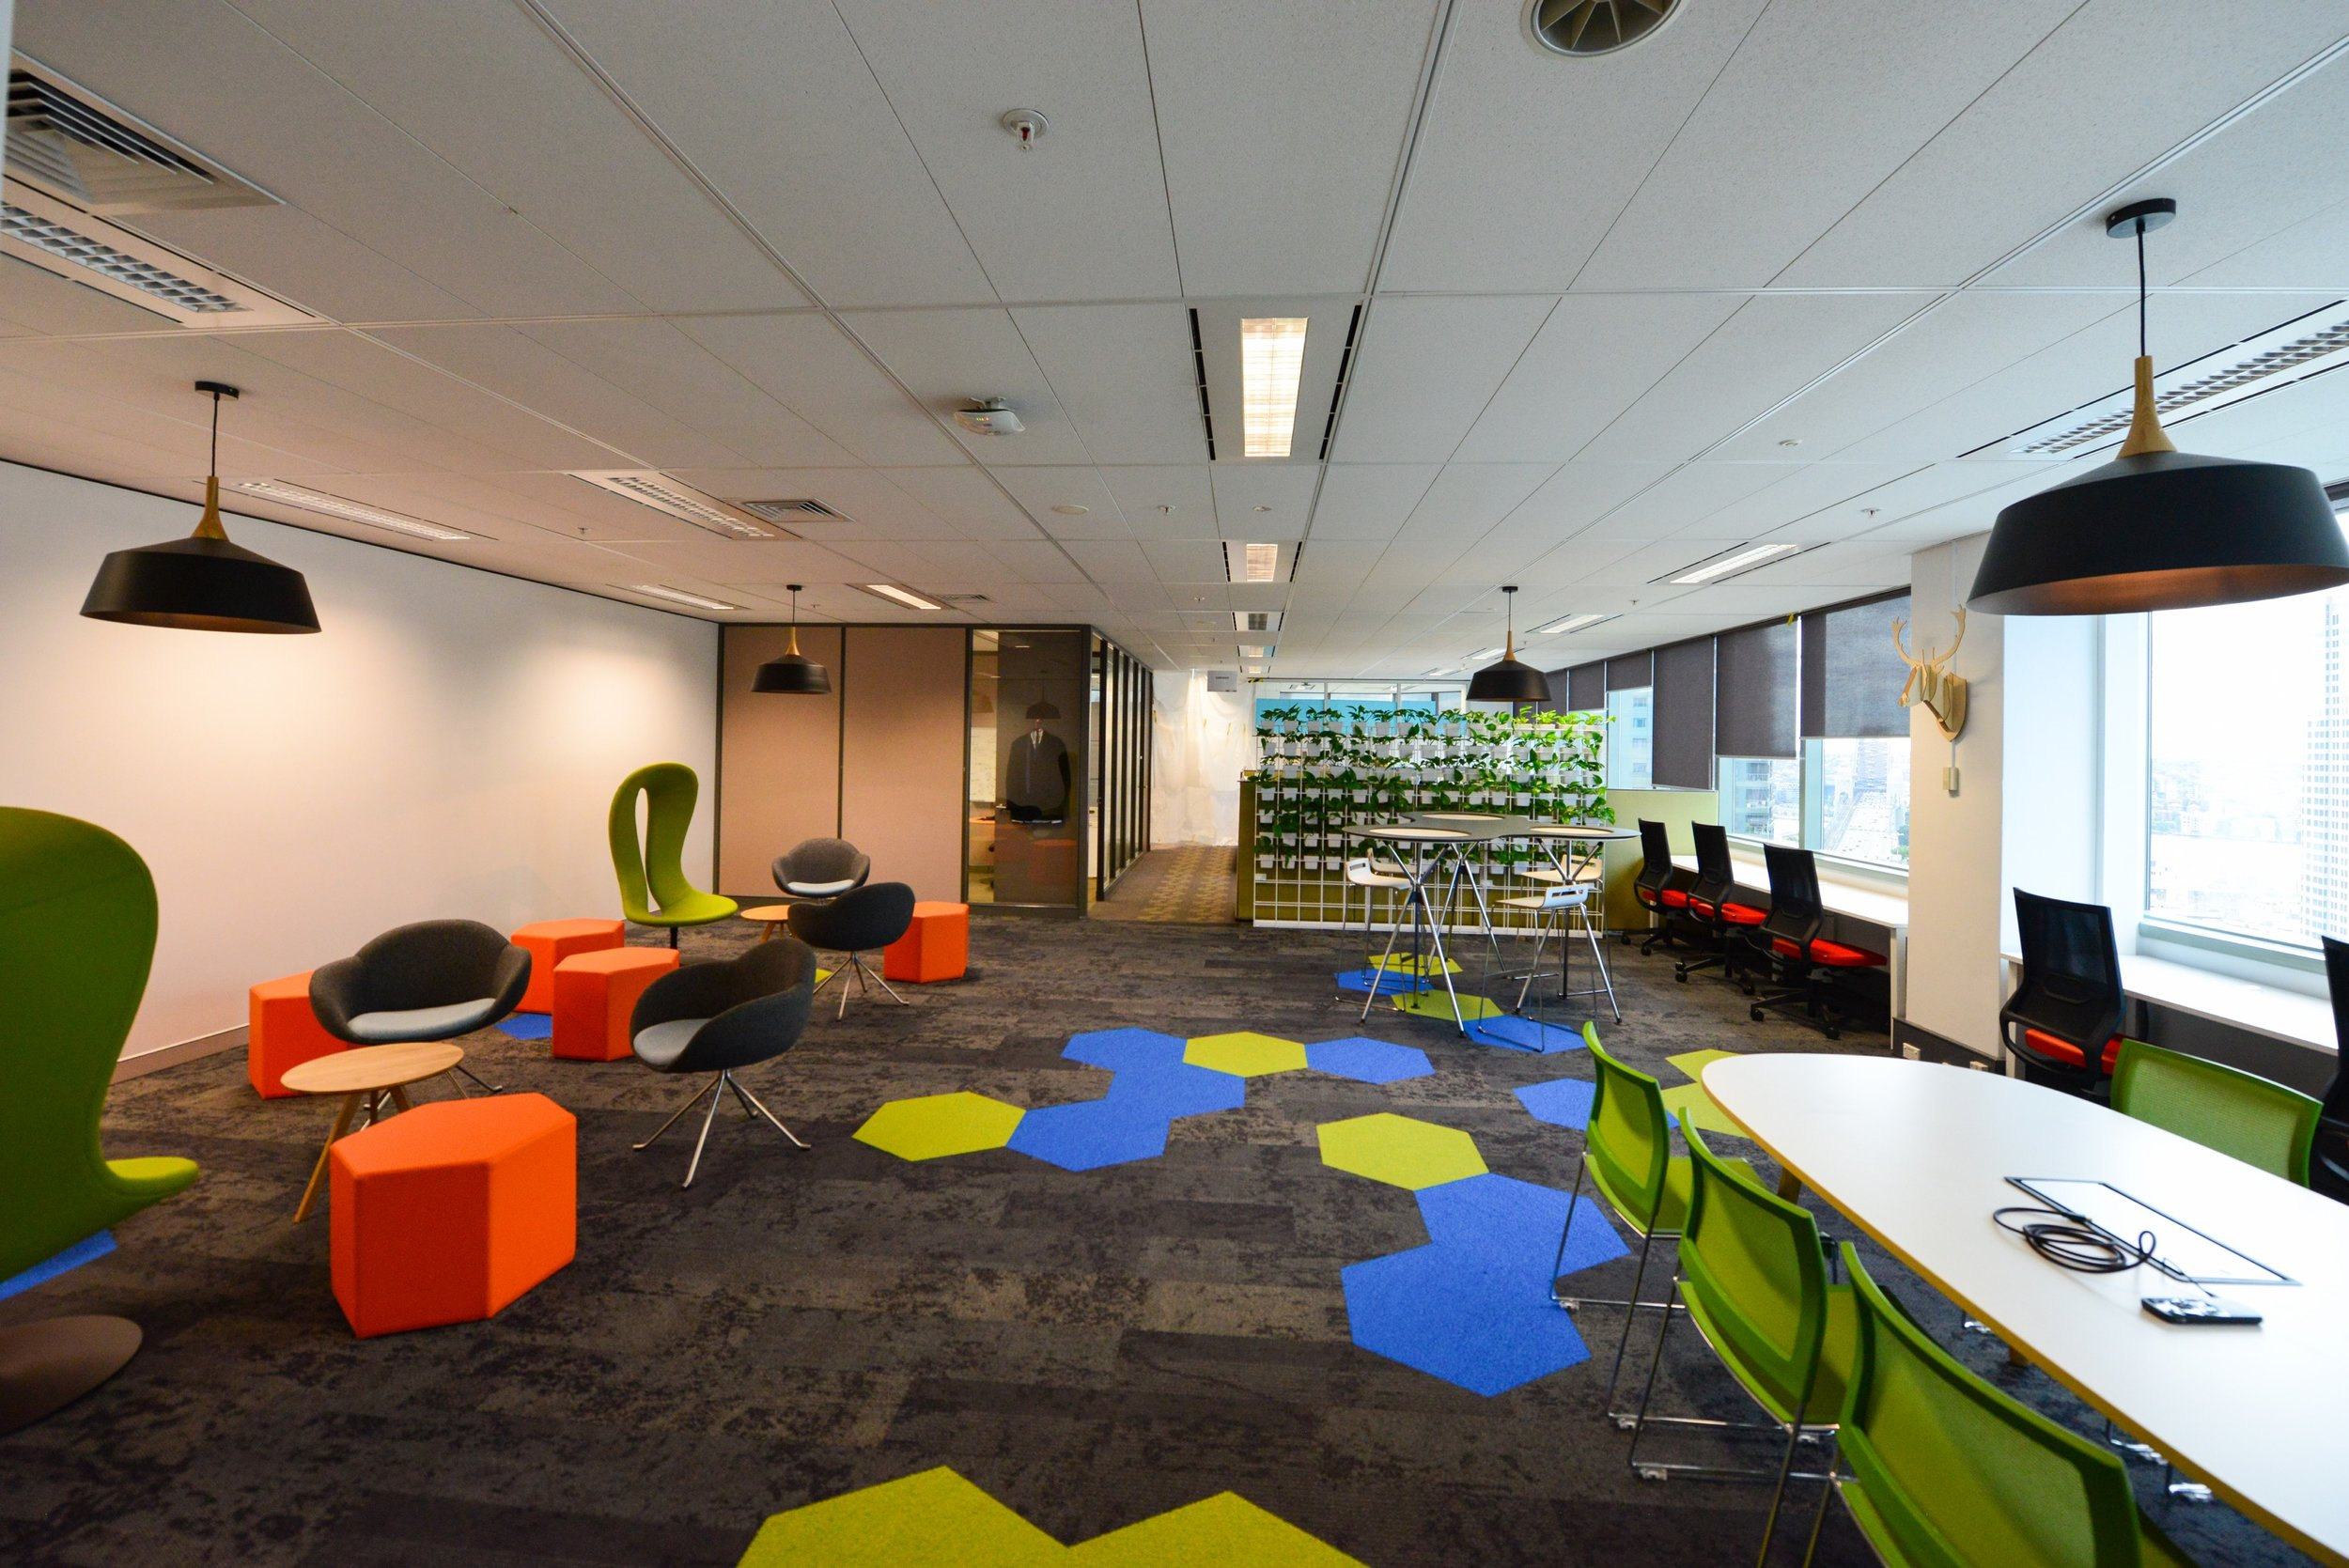 Multi-coloured carpet with matching seats of different shapes and sizes